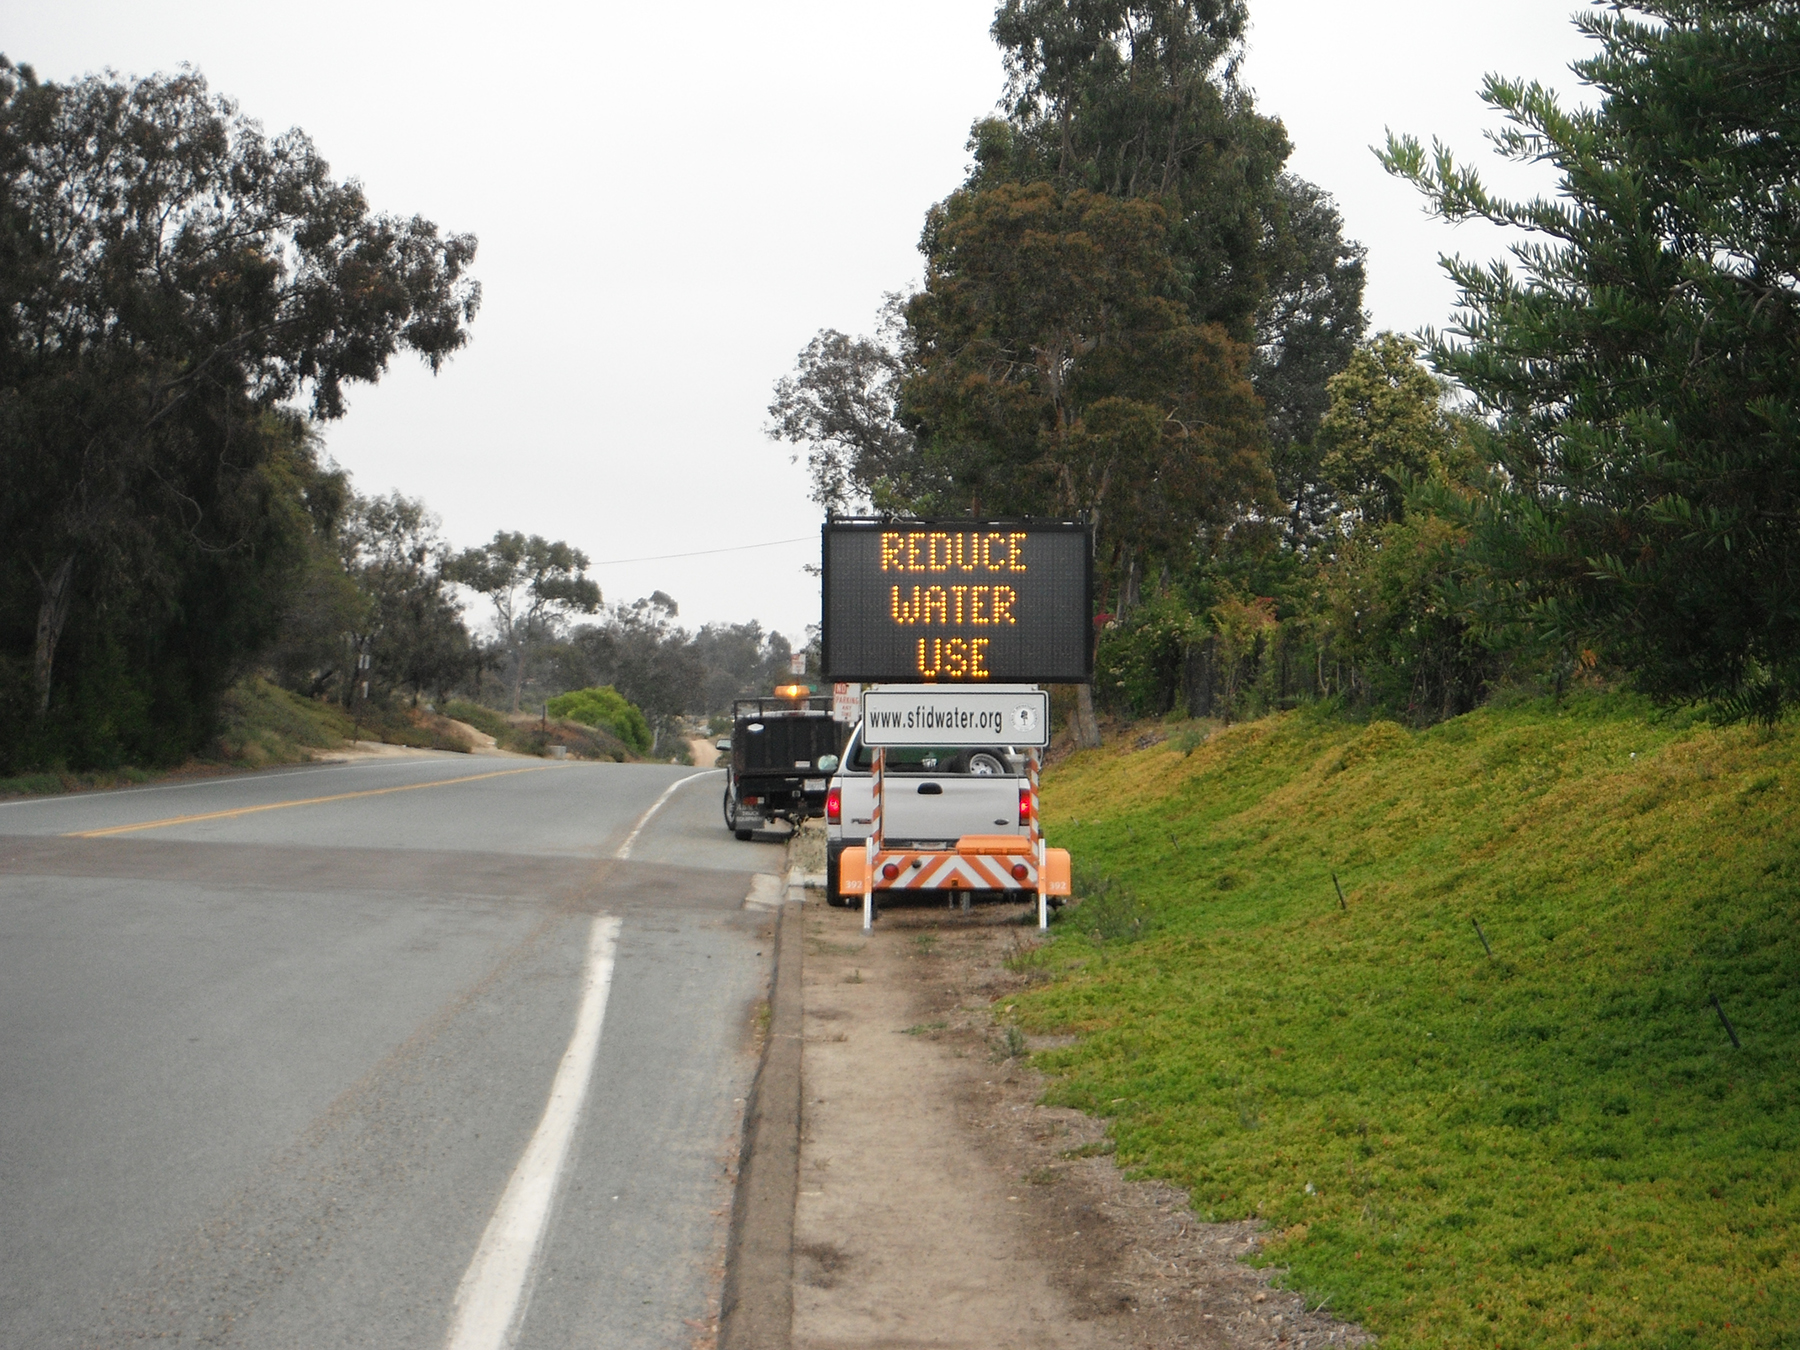 The Santa Fe Irrigation District is placing digital signs around the area, including Rancho Santa Fe, to remind people traveling the roads of the water restrictions. Photo courtesy Santa Fe Irrigation District